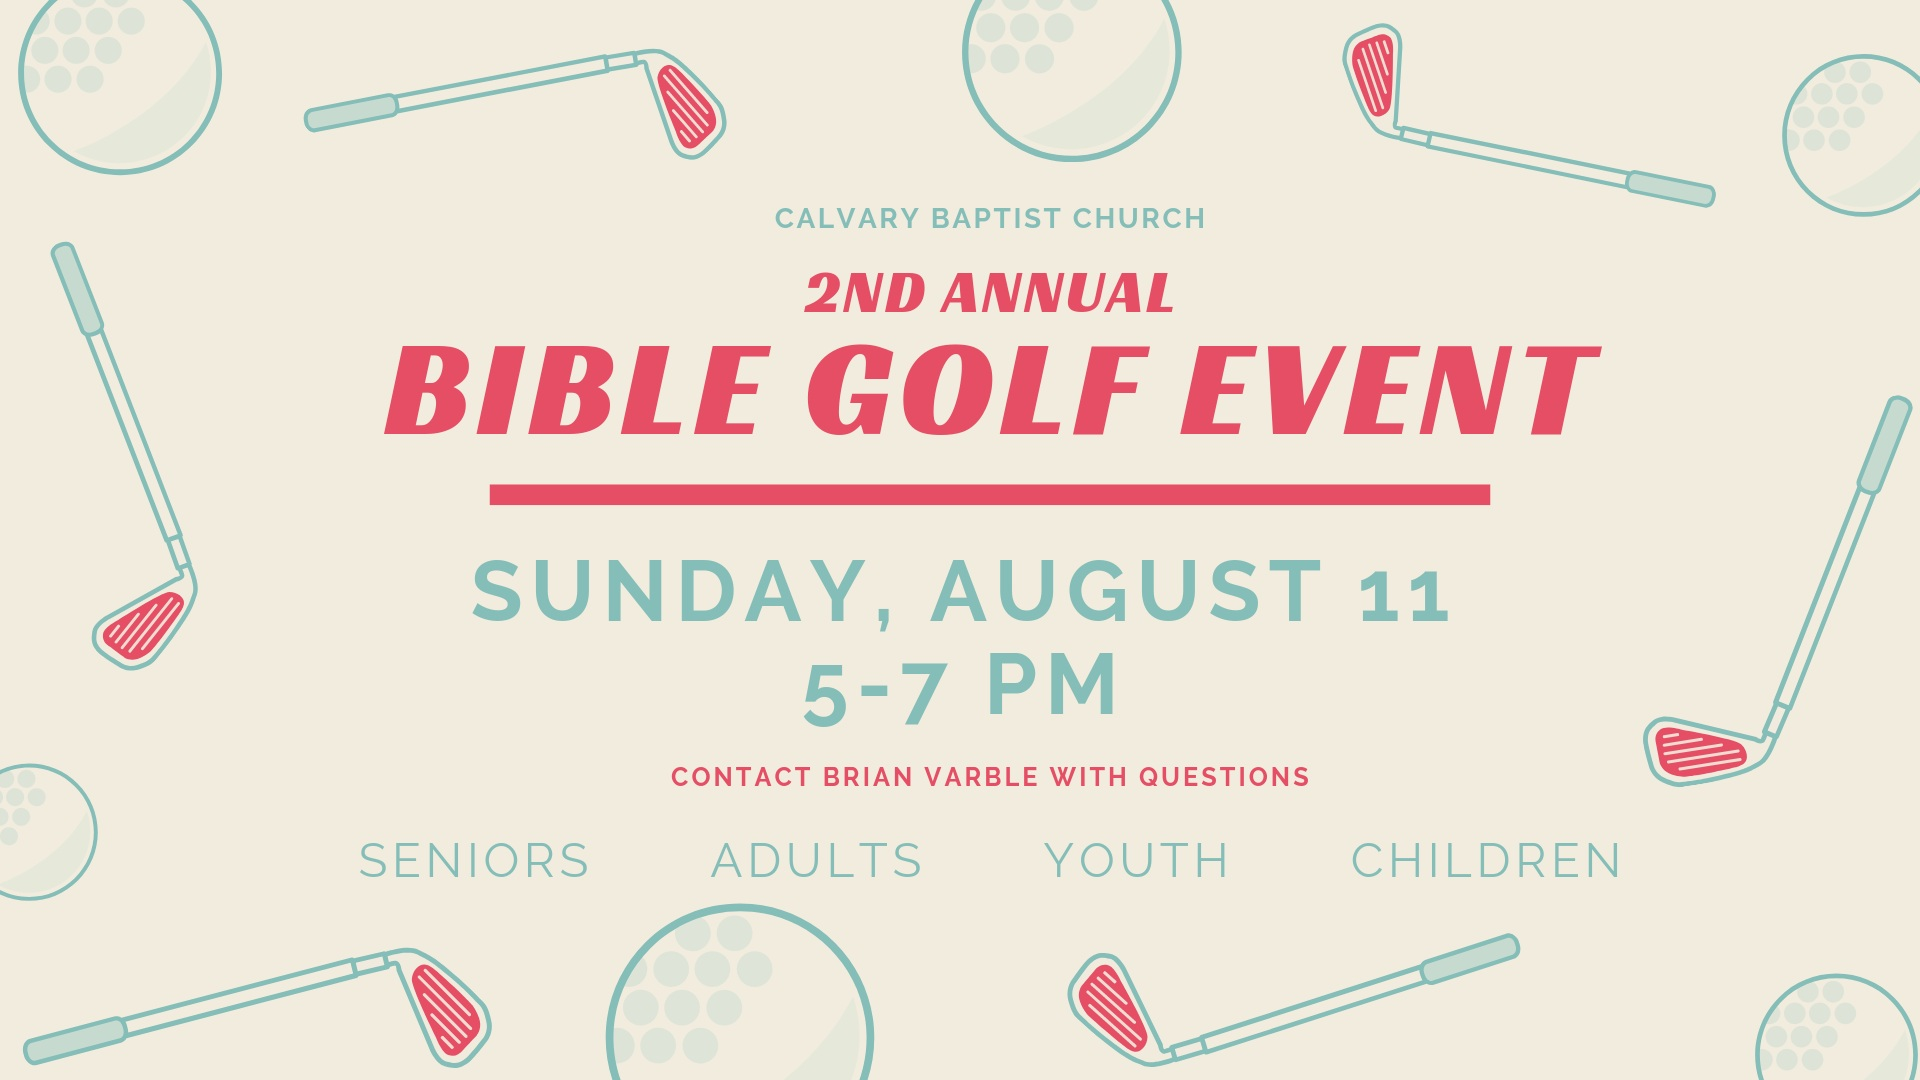 bible+golf+announcement+image.jpg